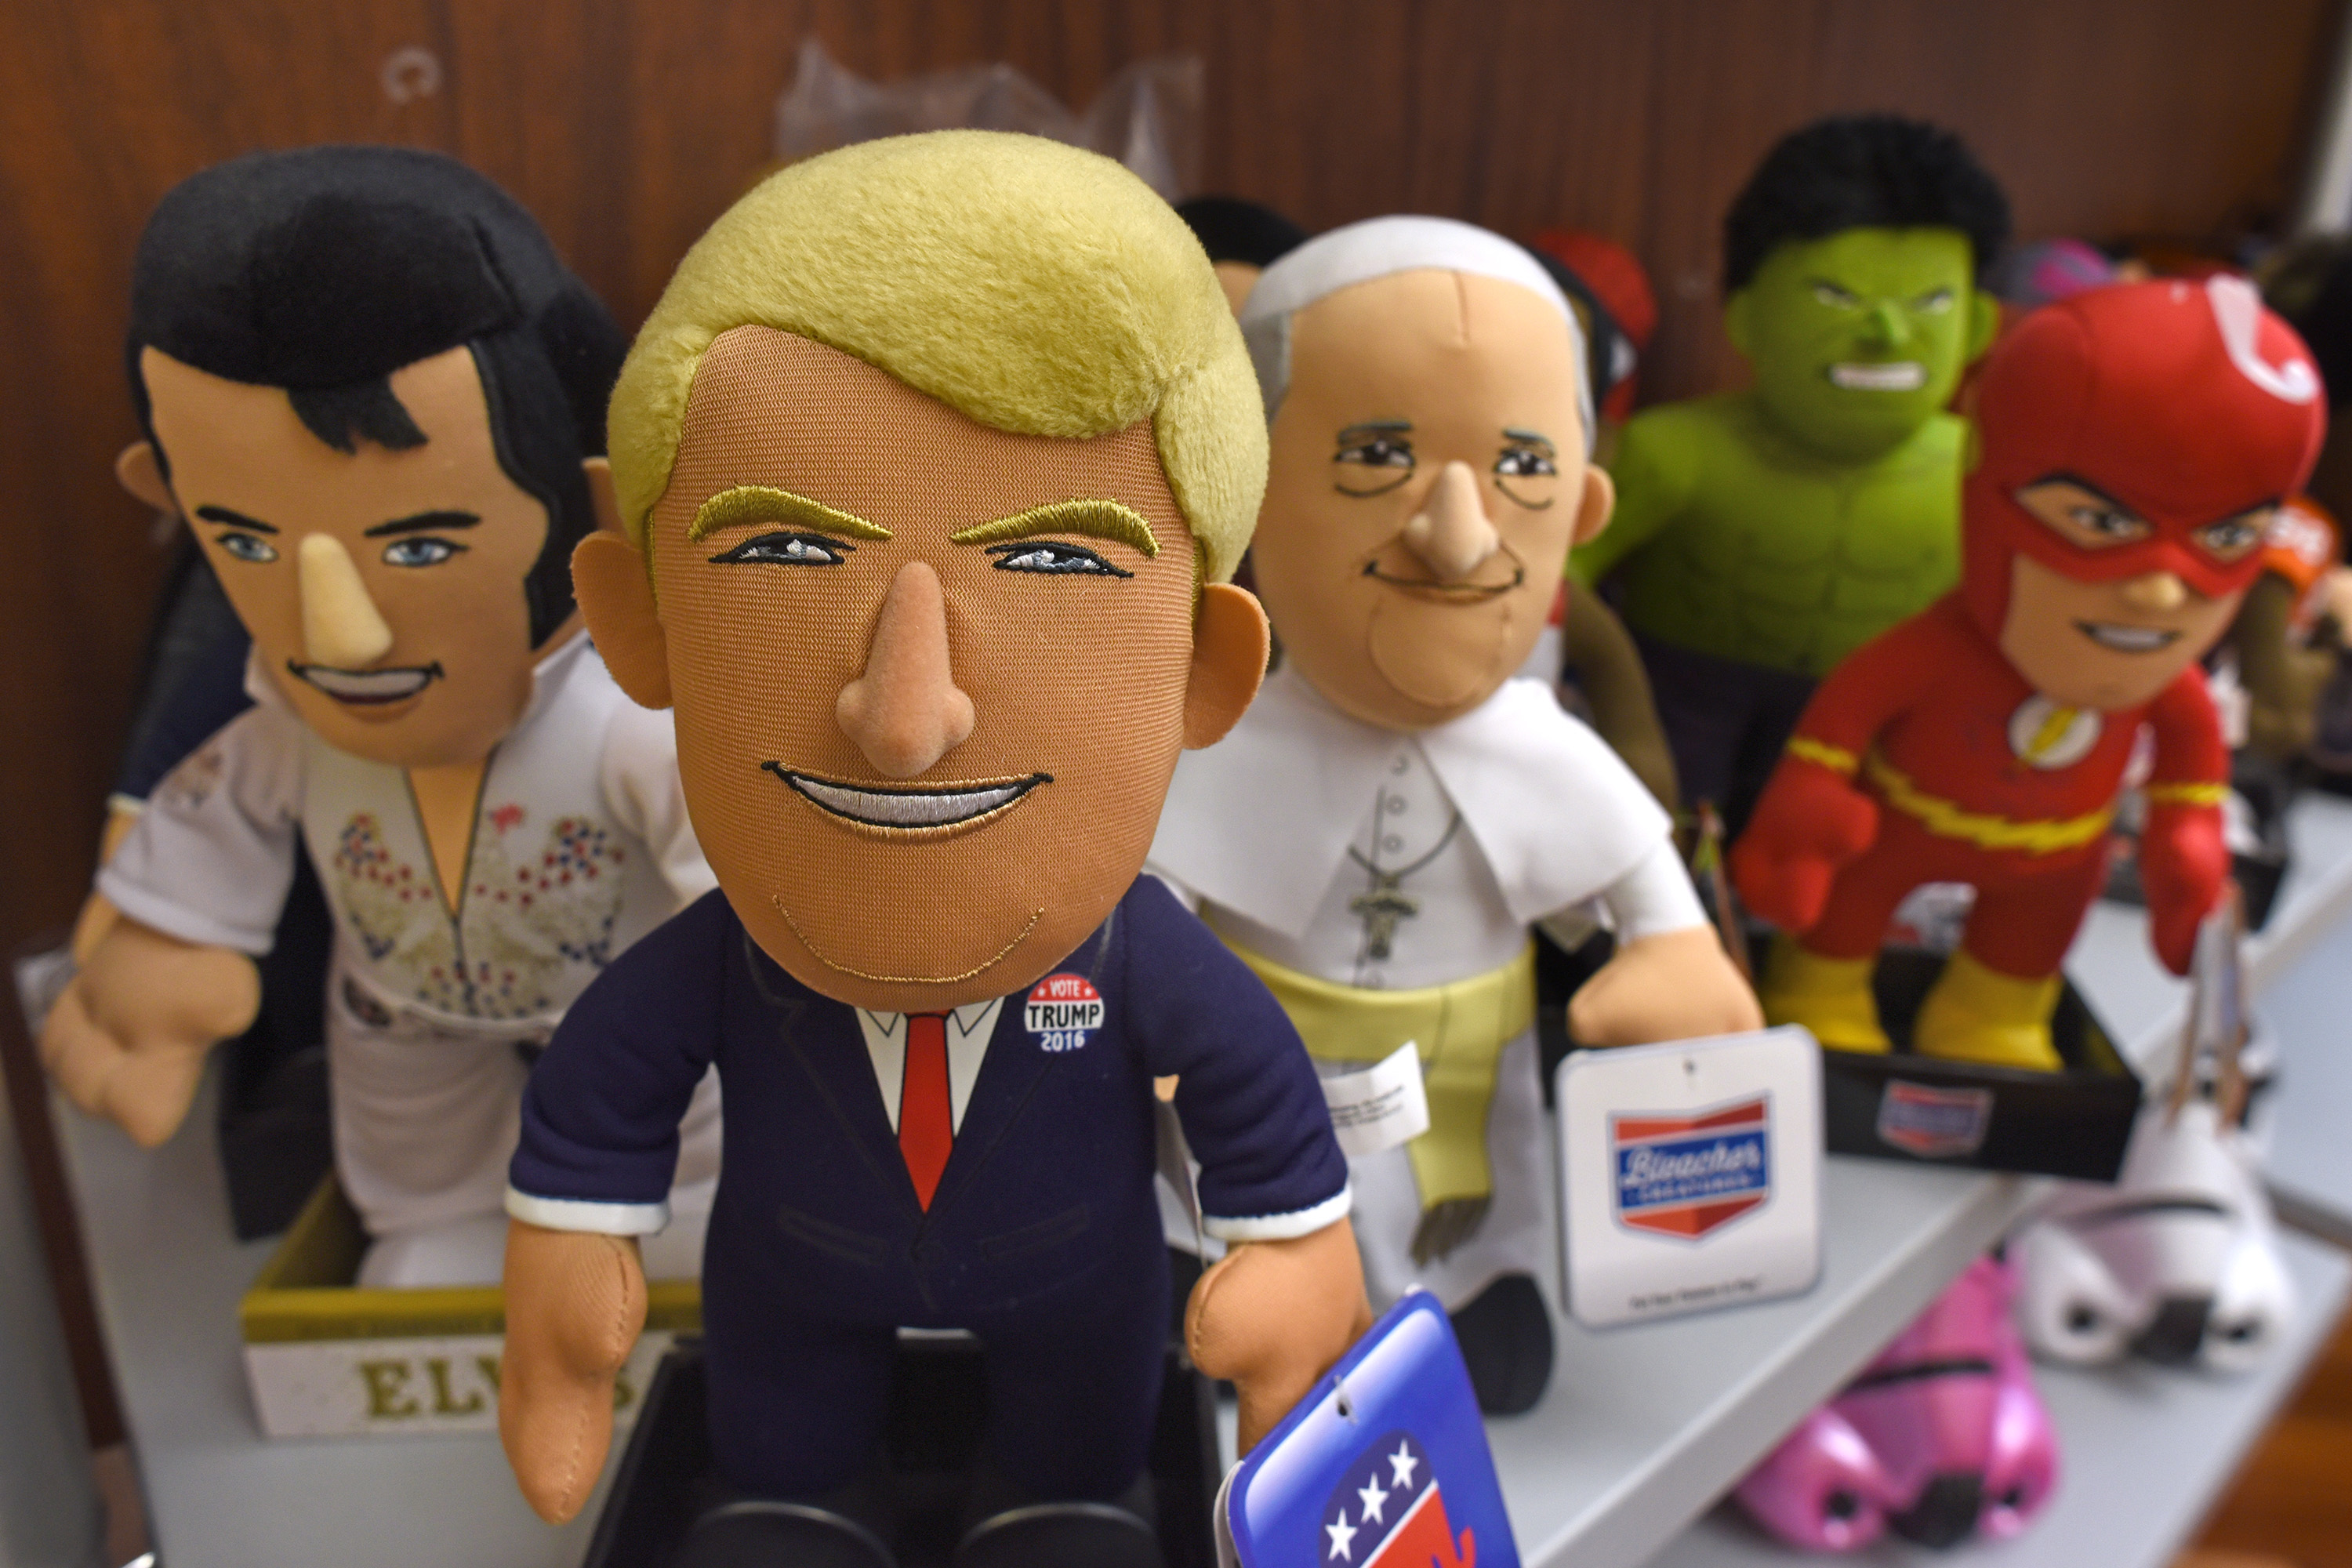 Elvis (from left), President Donald Trump, Pope Francis and some super hero 10-inch plush dolls created by Plymouth Township-based Bleacher Creatures on display at Pangea Brands in New York September 28, 2017. Bleacher Creatures has emerged from bankruptcy with a new ownership and business structure, with a new name, Uncanny Brands. It is the result of its purchase by New York-based Pangea, known for its multi-brand pop-culture toys, appliances (including Star Wars waffle irons and toasters). Bleacher Creatures´ founder Matthew Hoffman will be president of the new business and is finally, after more than six years in business, having fun. TOM GRALISH / Staff Photographer